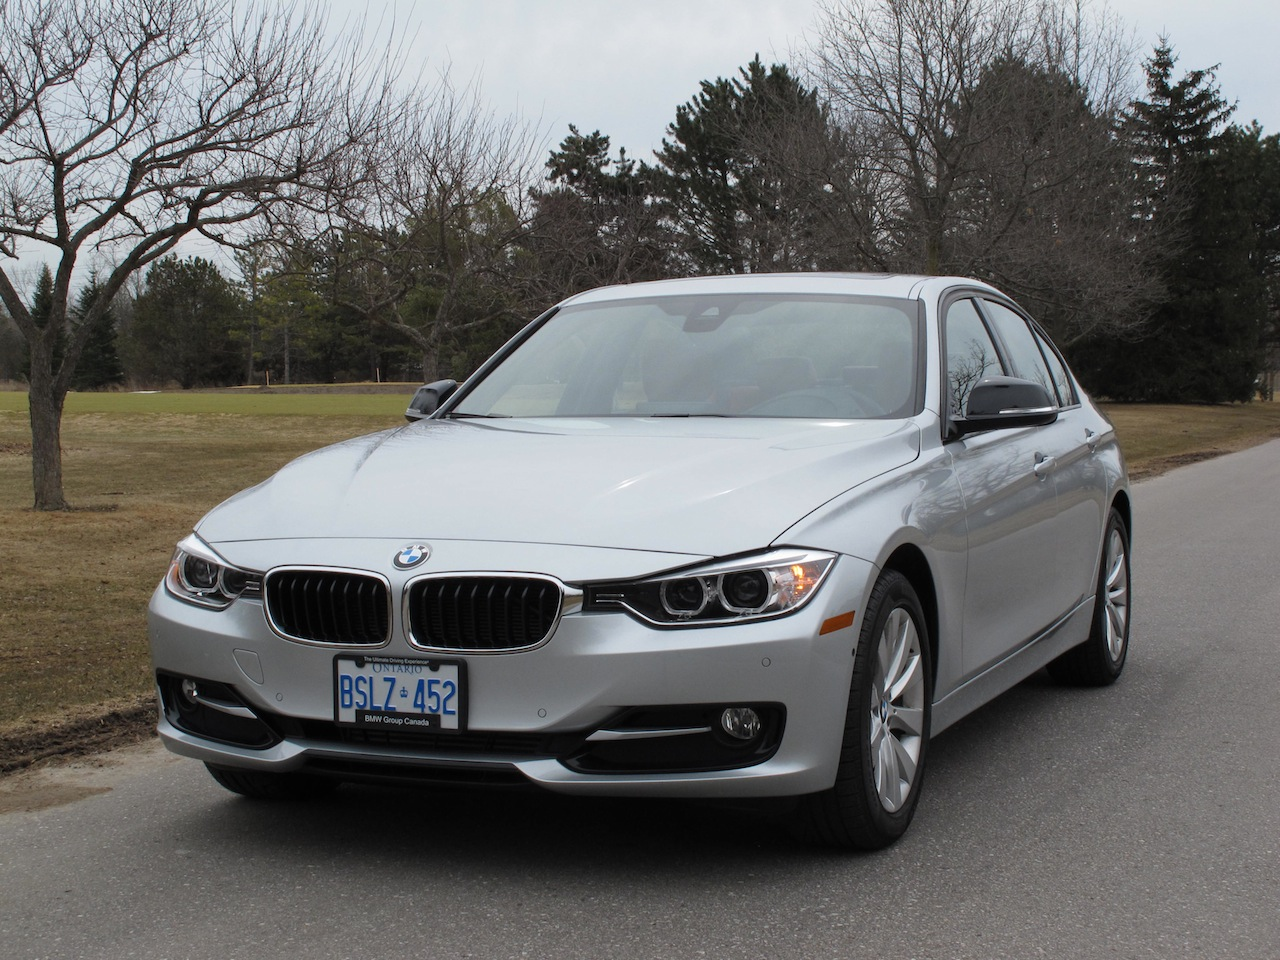 2014 Bmw 328d Xdrive Photo Gallery Cars Photos Test